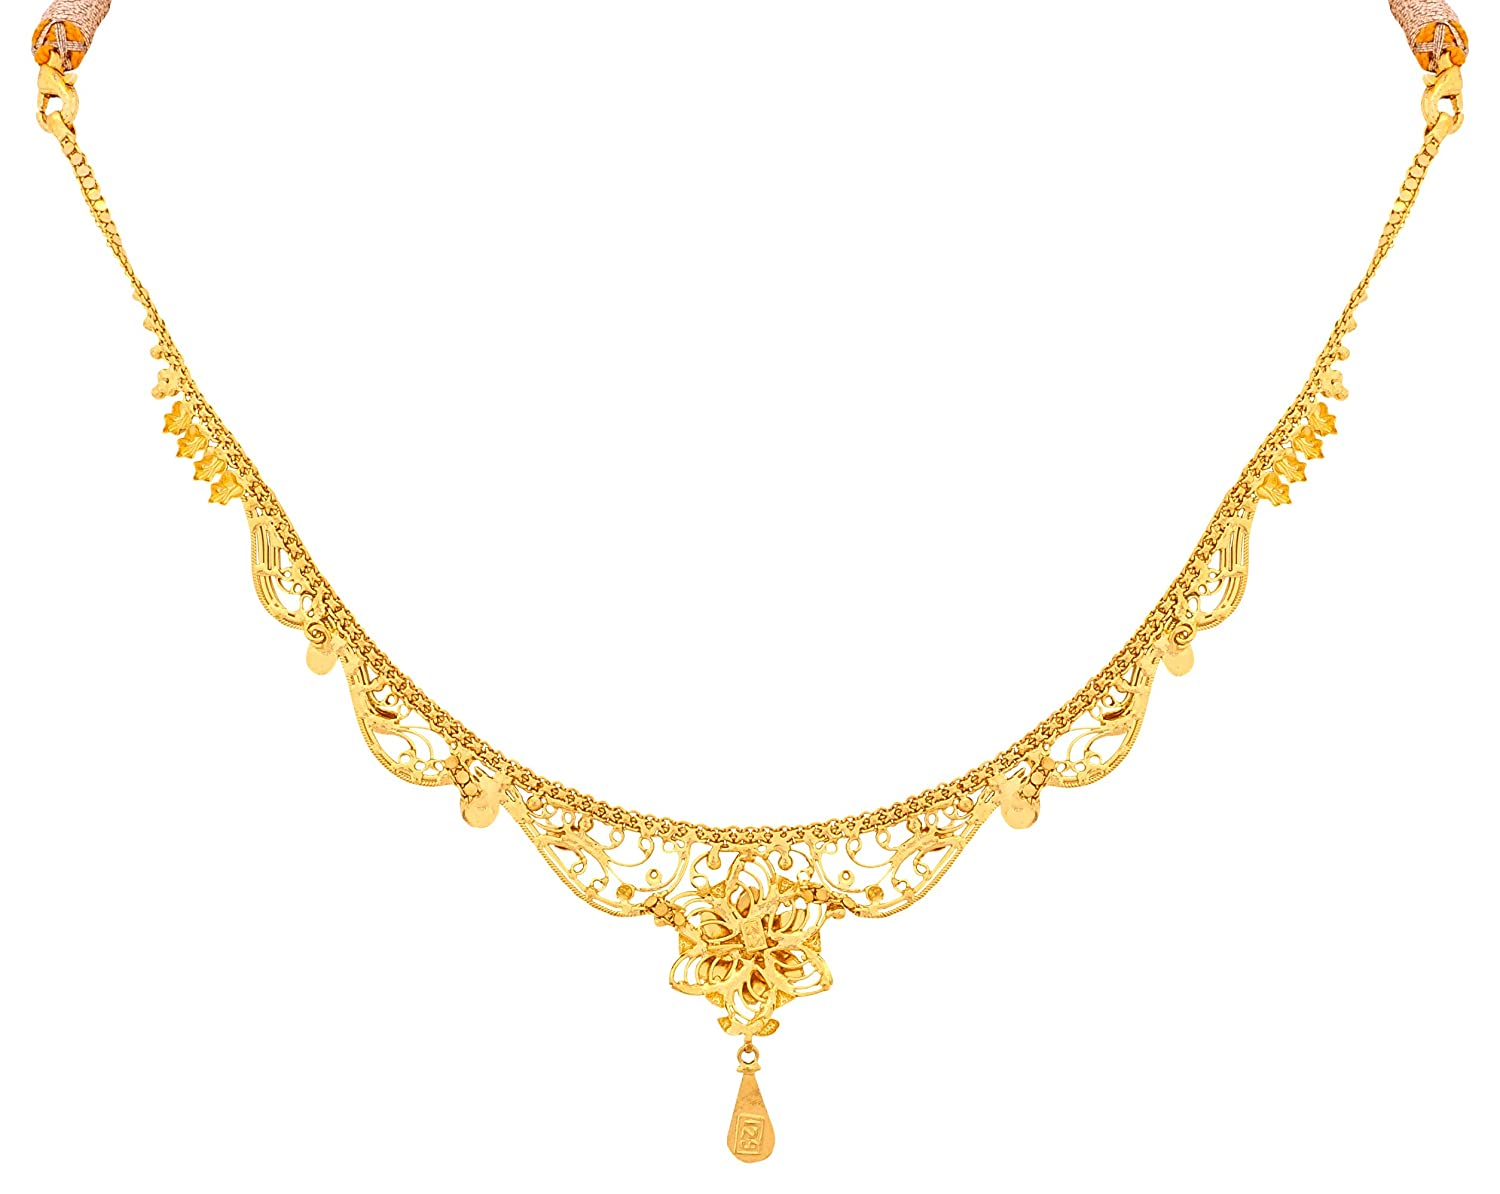 price gold youtube rupees necklace in weight with light inspirational designs jewellery